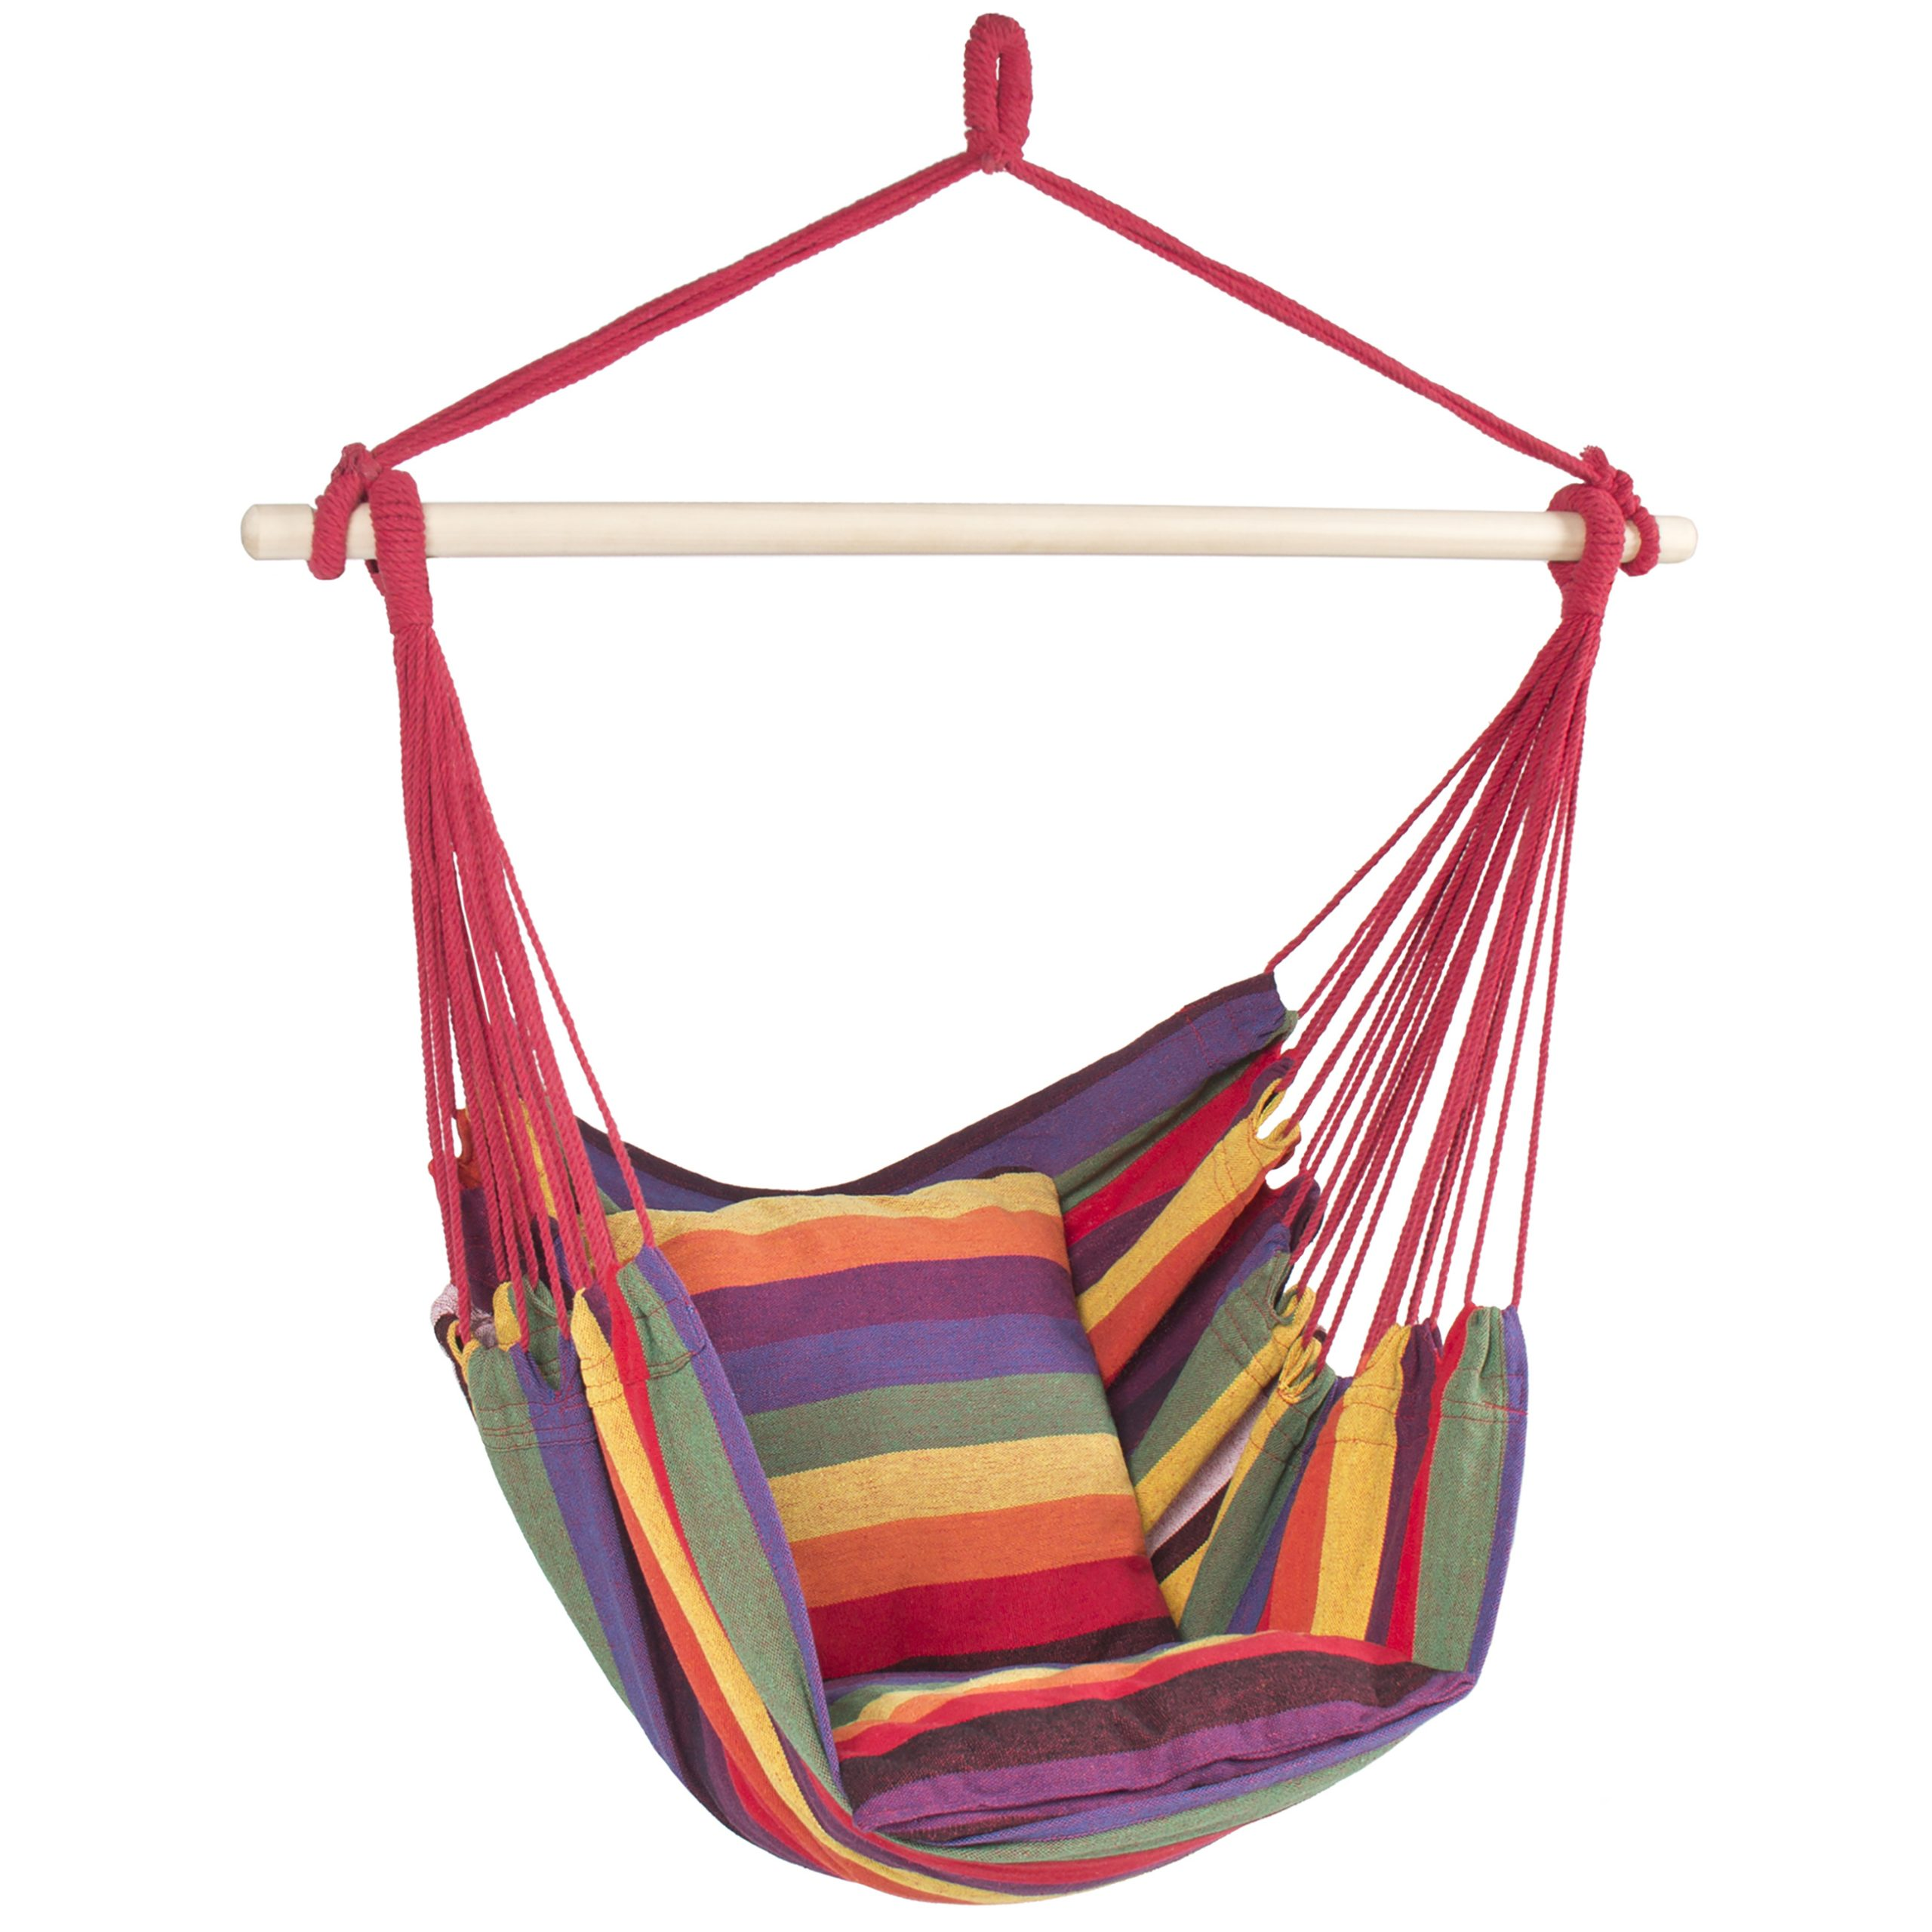 Most Recently Released Best Choice Products Portable Hanging Cotton Hammock Rope Chair Swing, Red Stripe – Walmart Inside Patio Hanging Porch Swings (Gallery 14 of 25)